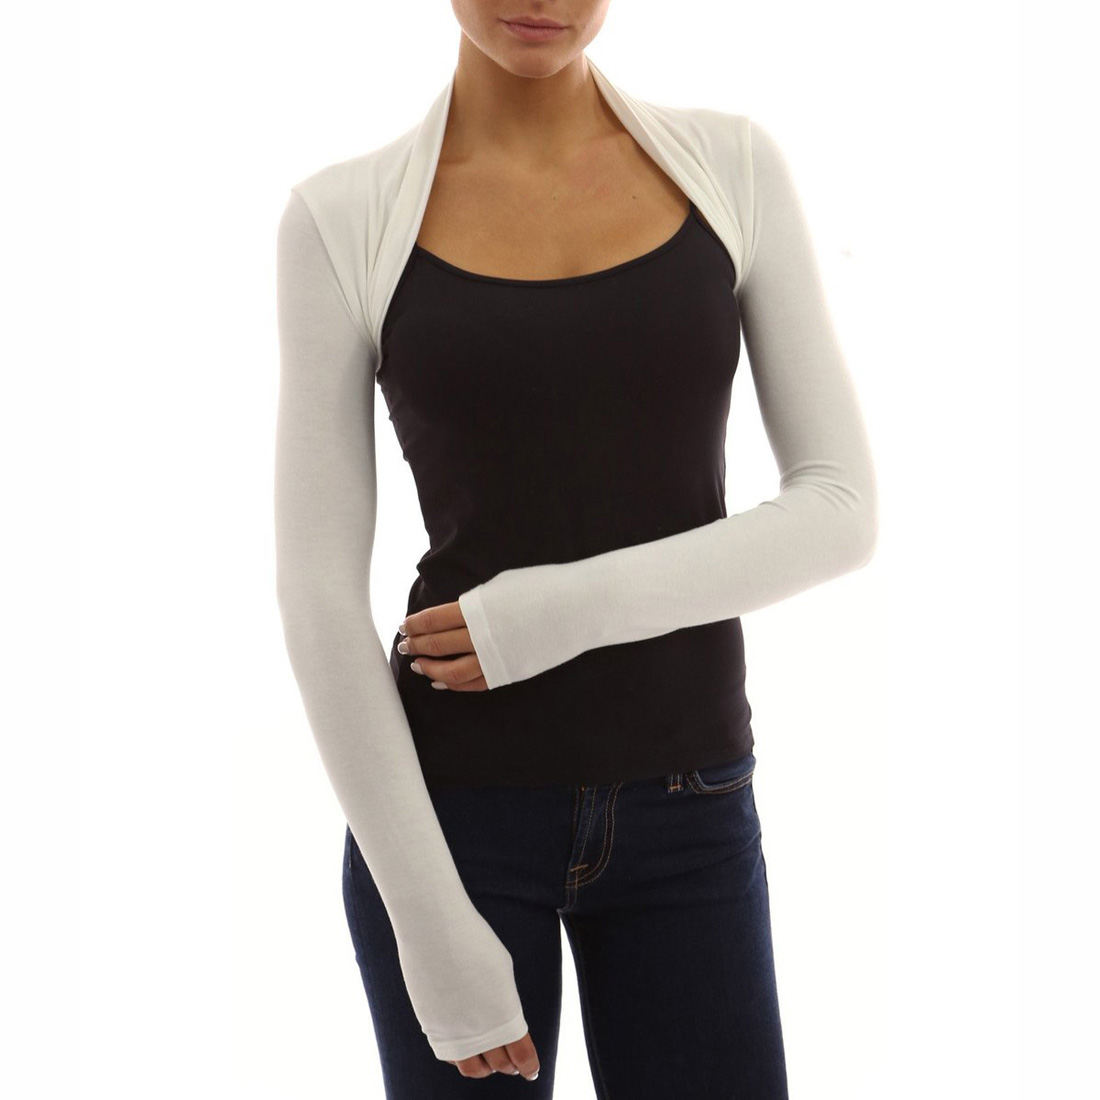 Womens Long Sleeve Bolero Shrug Knit Plain Cropped Cardigan Top ...